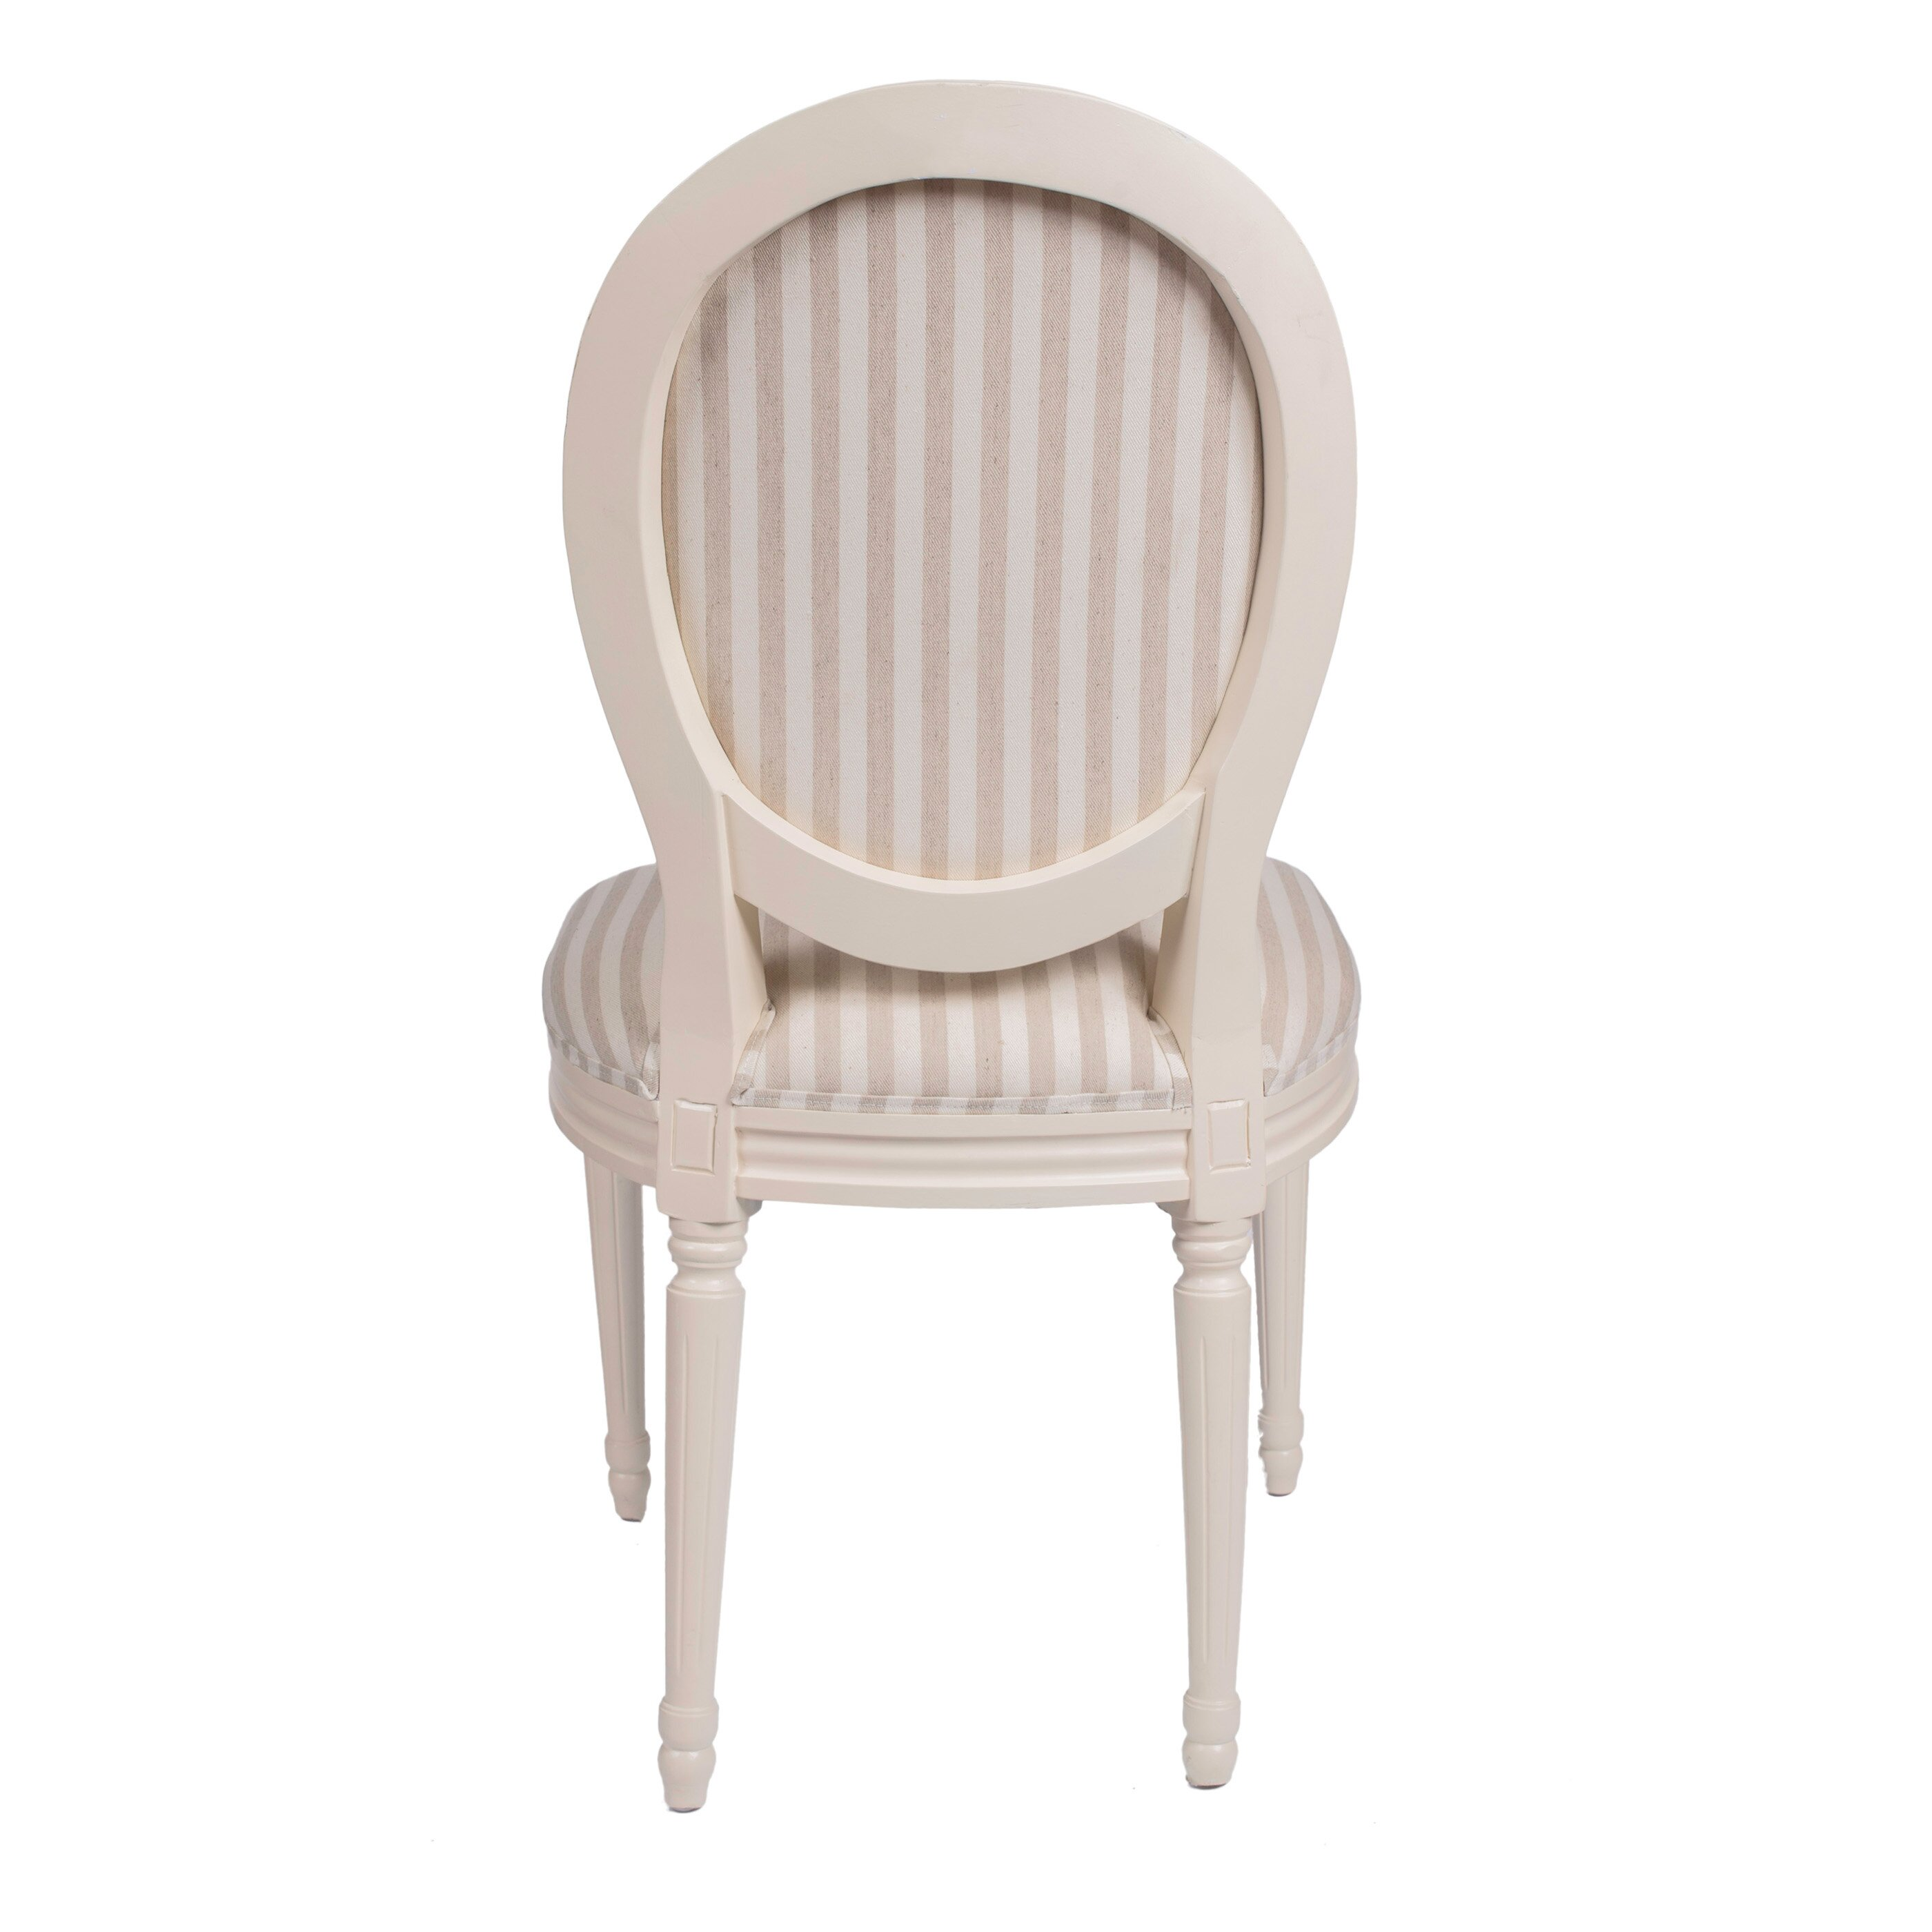 Derry s Louis Round Back Striped Dining Chair & Reviews